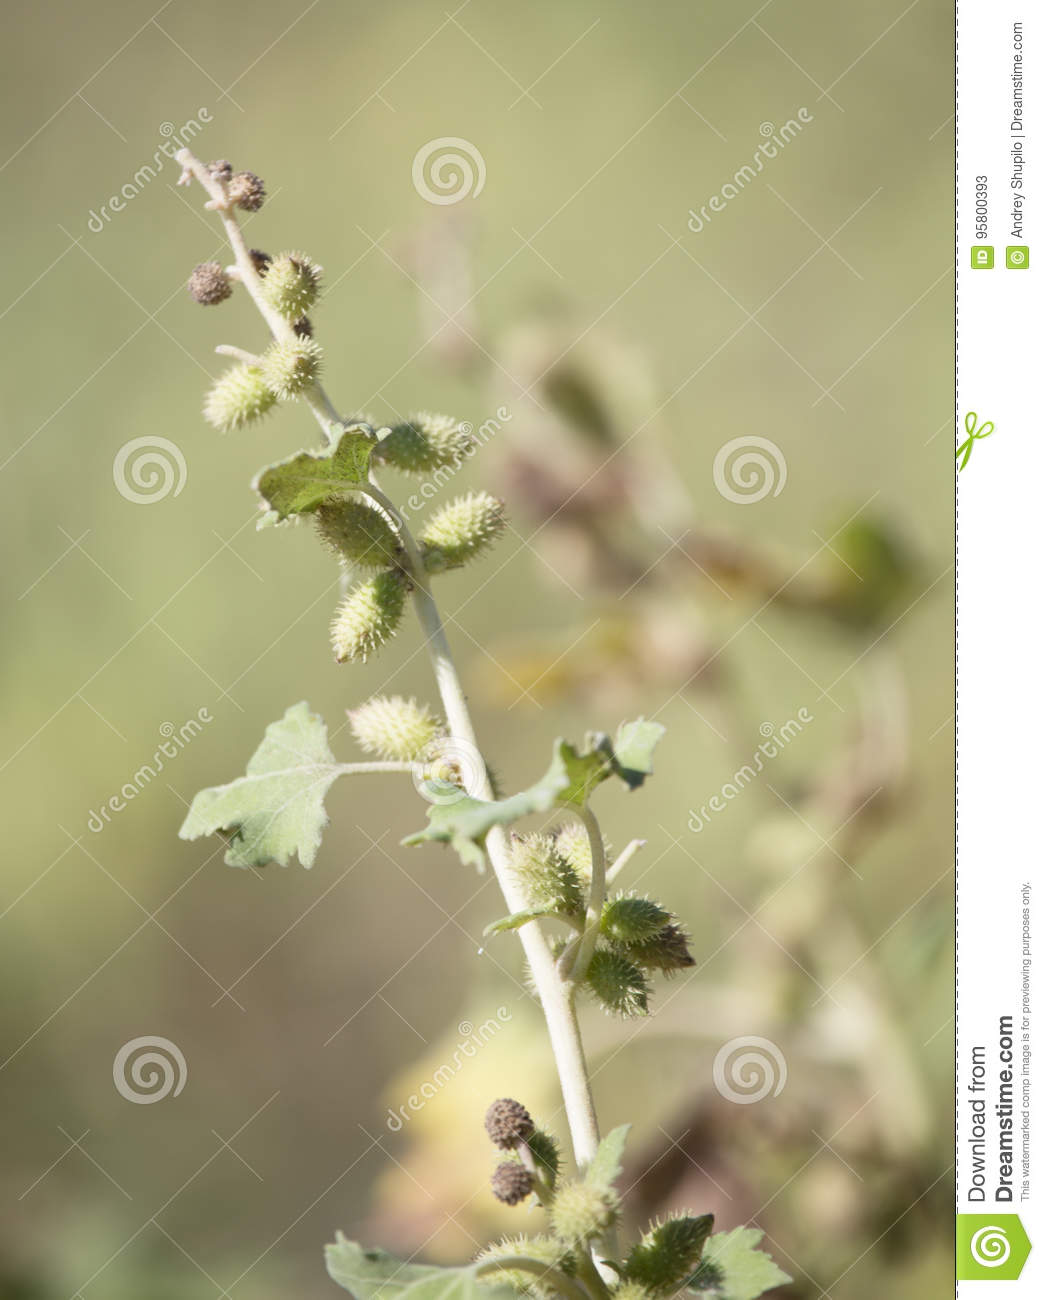 Seeds on the prickly plant